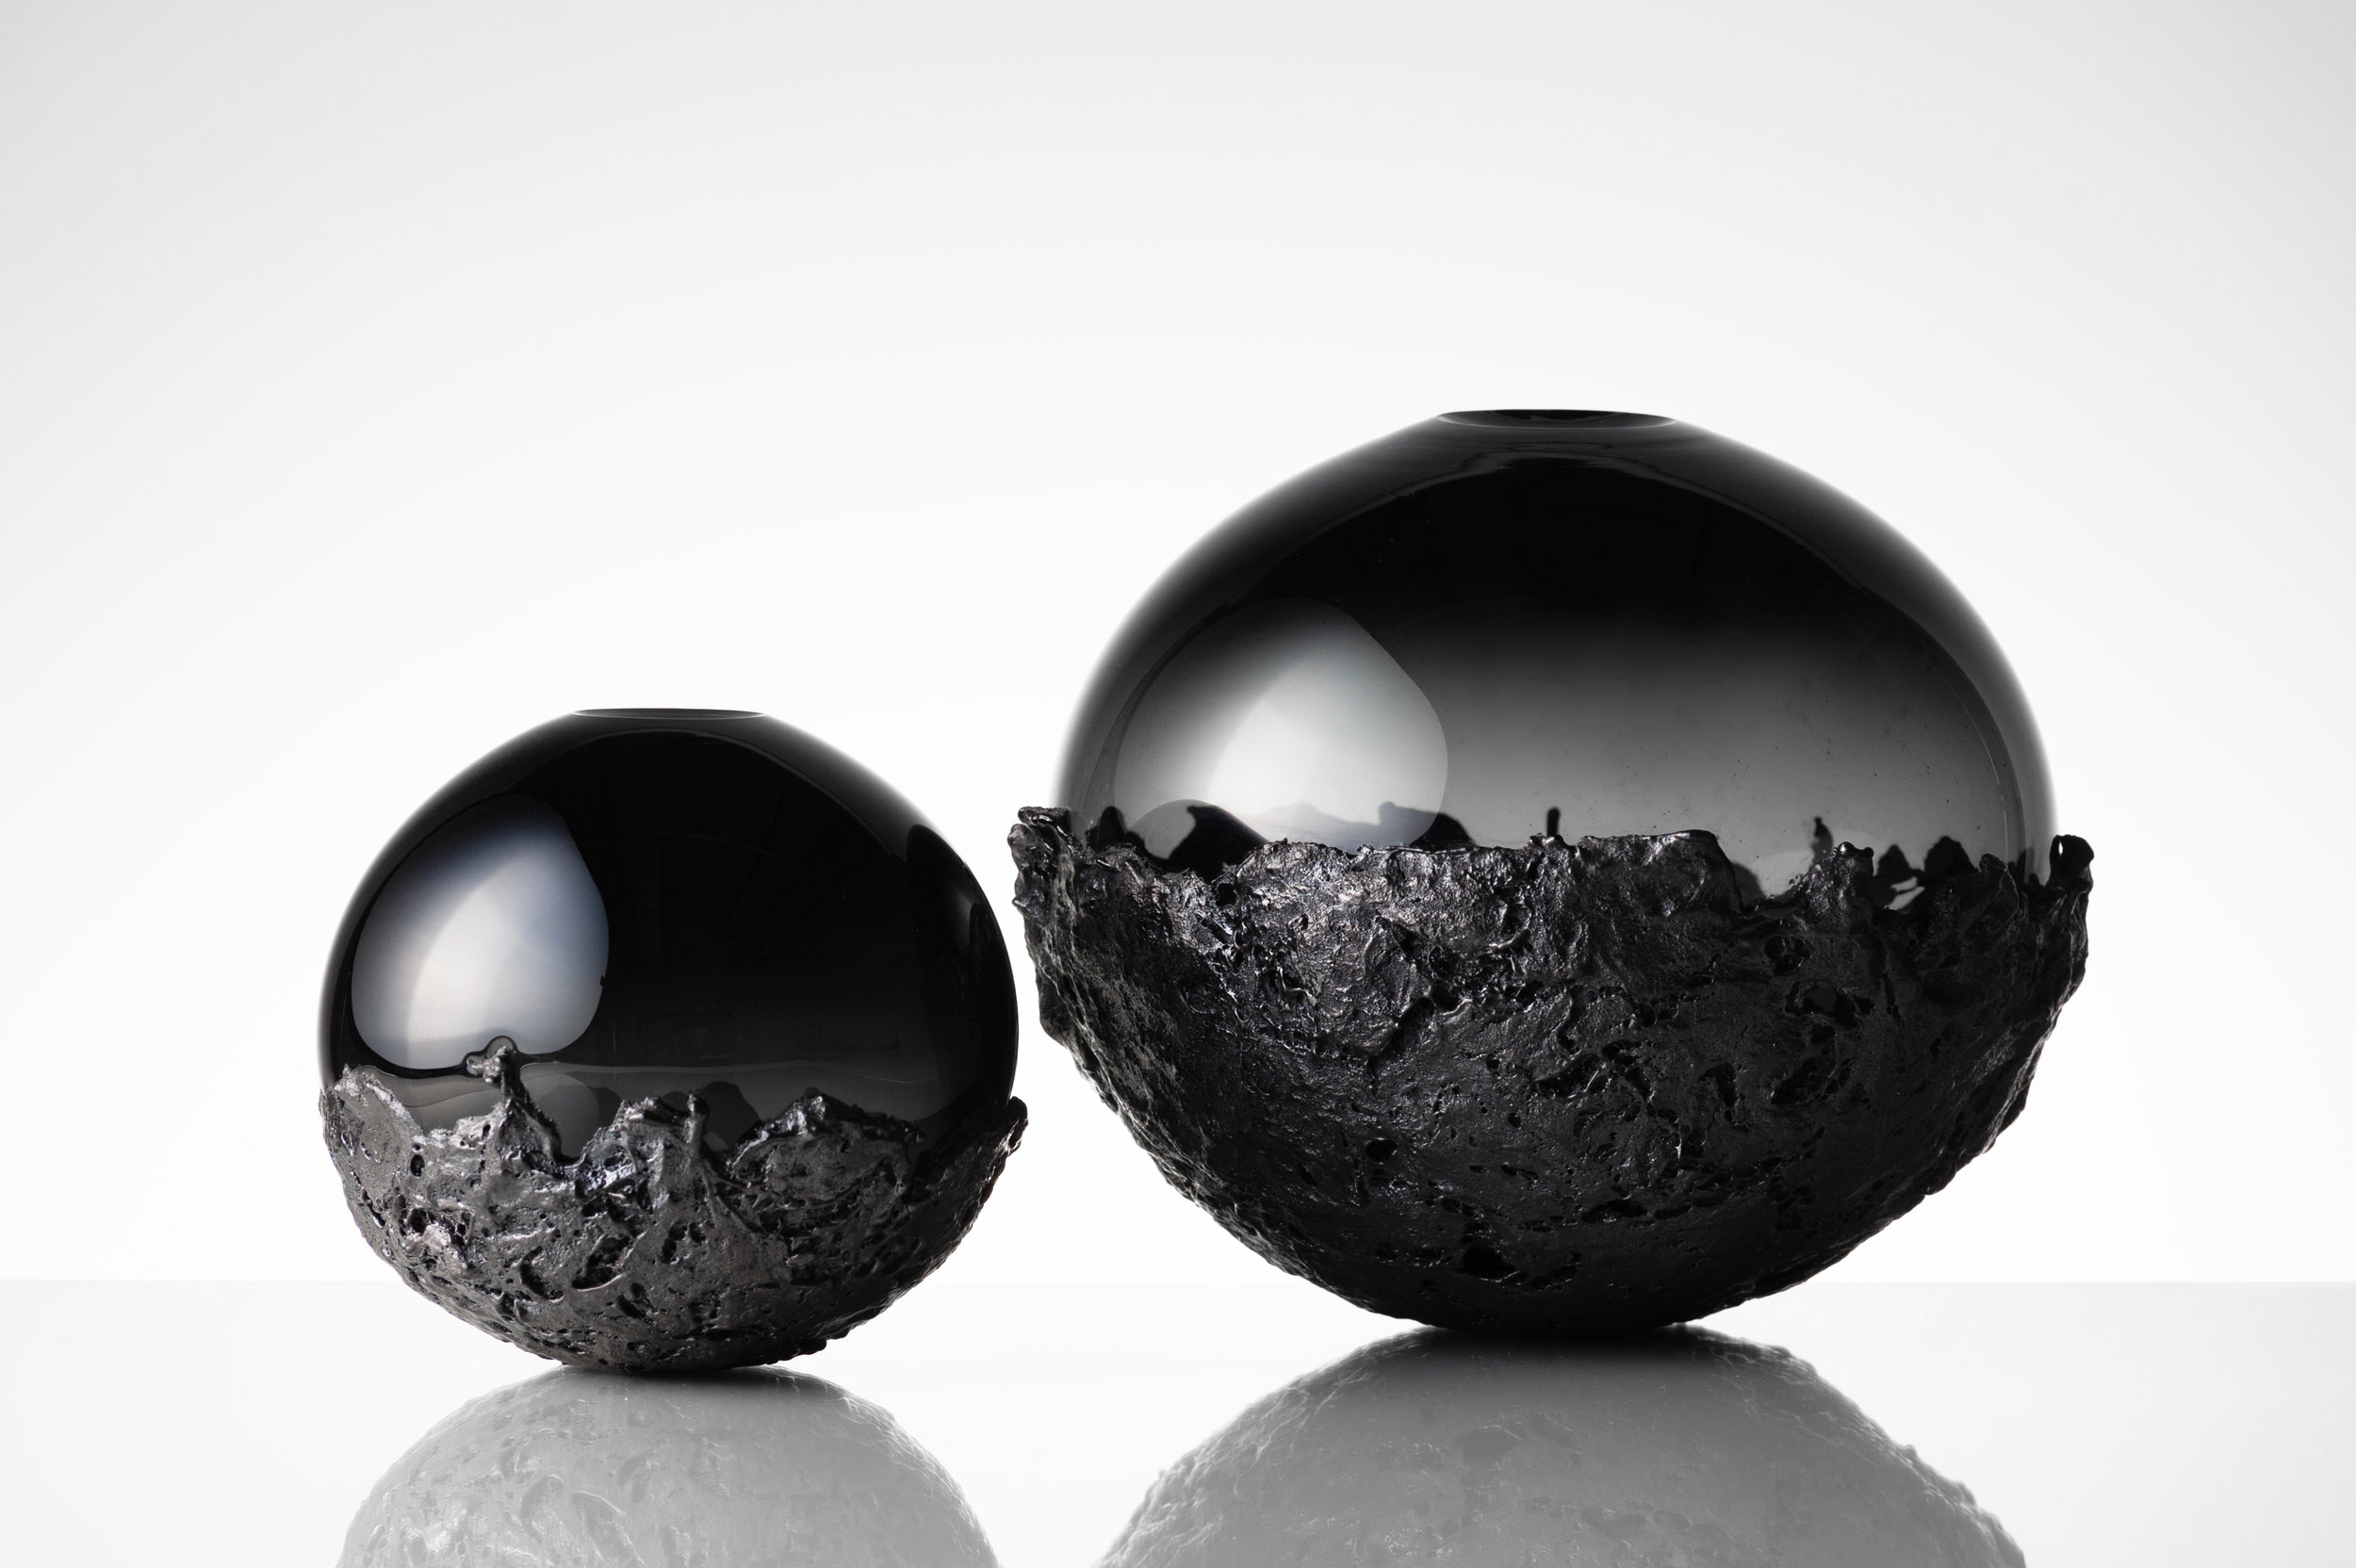 Harris_Jaclyn_Black Spheres.jpg